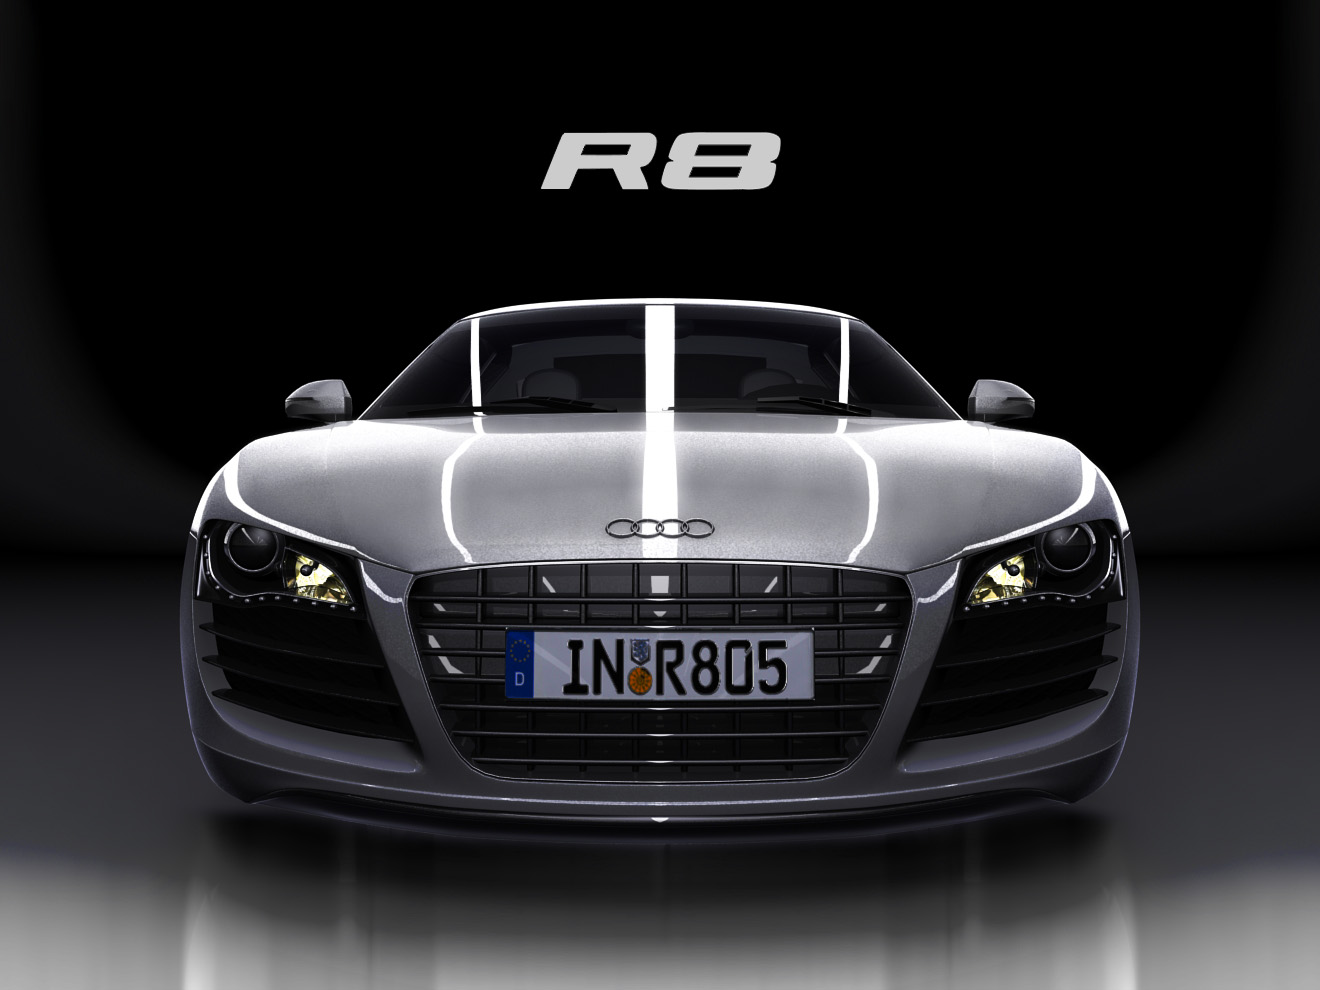 Audi-R-HD-wallpaper-wp423798-1